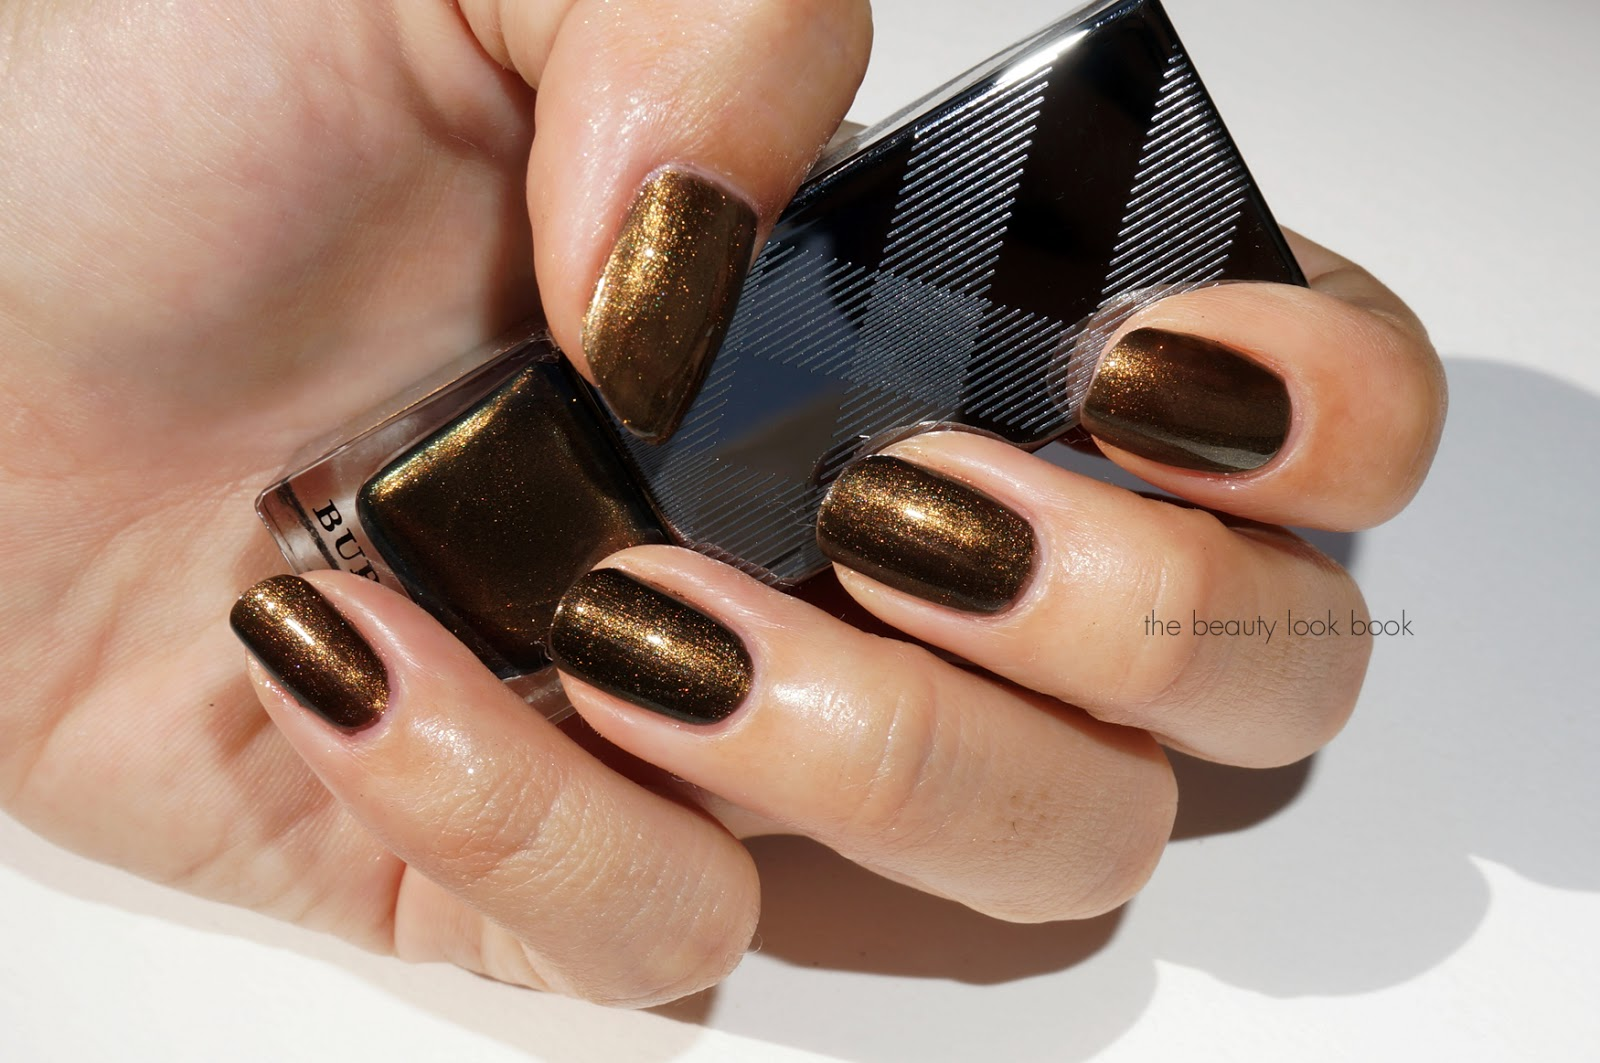 Color Focus | Bronze and Metallic Nail Lacquers | The Beauty Look Book